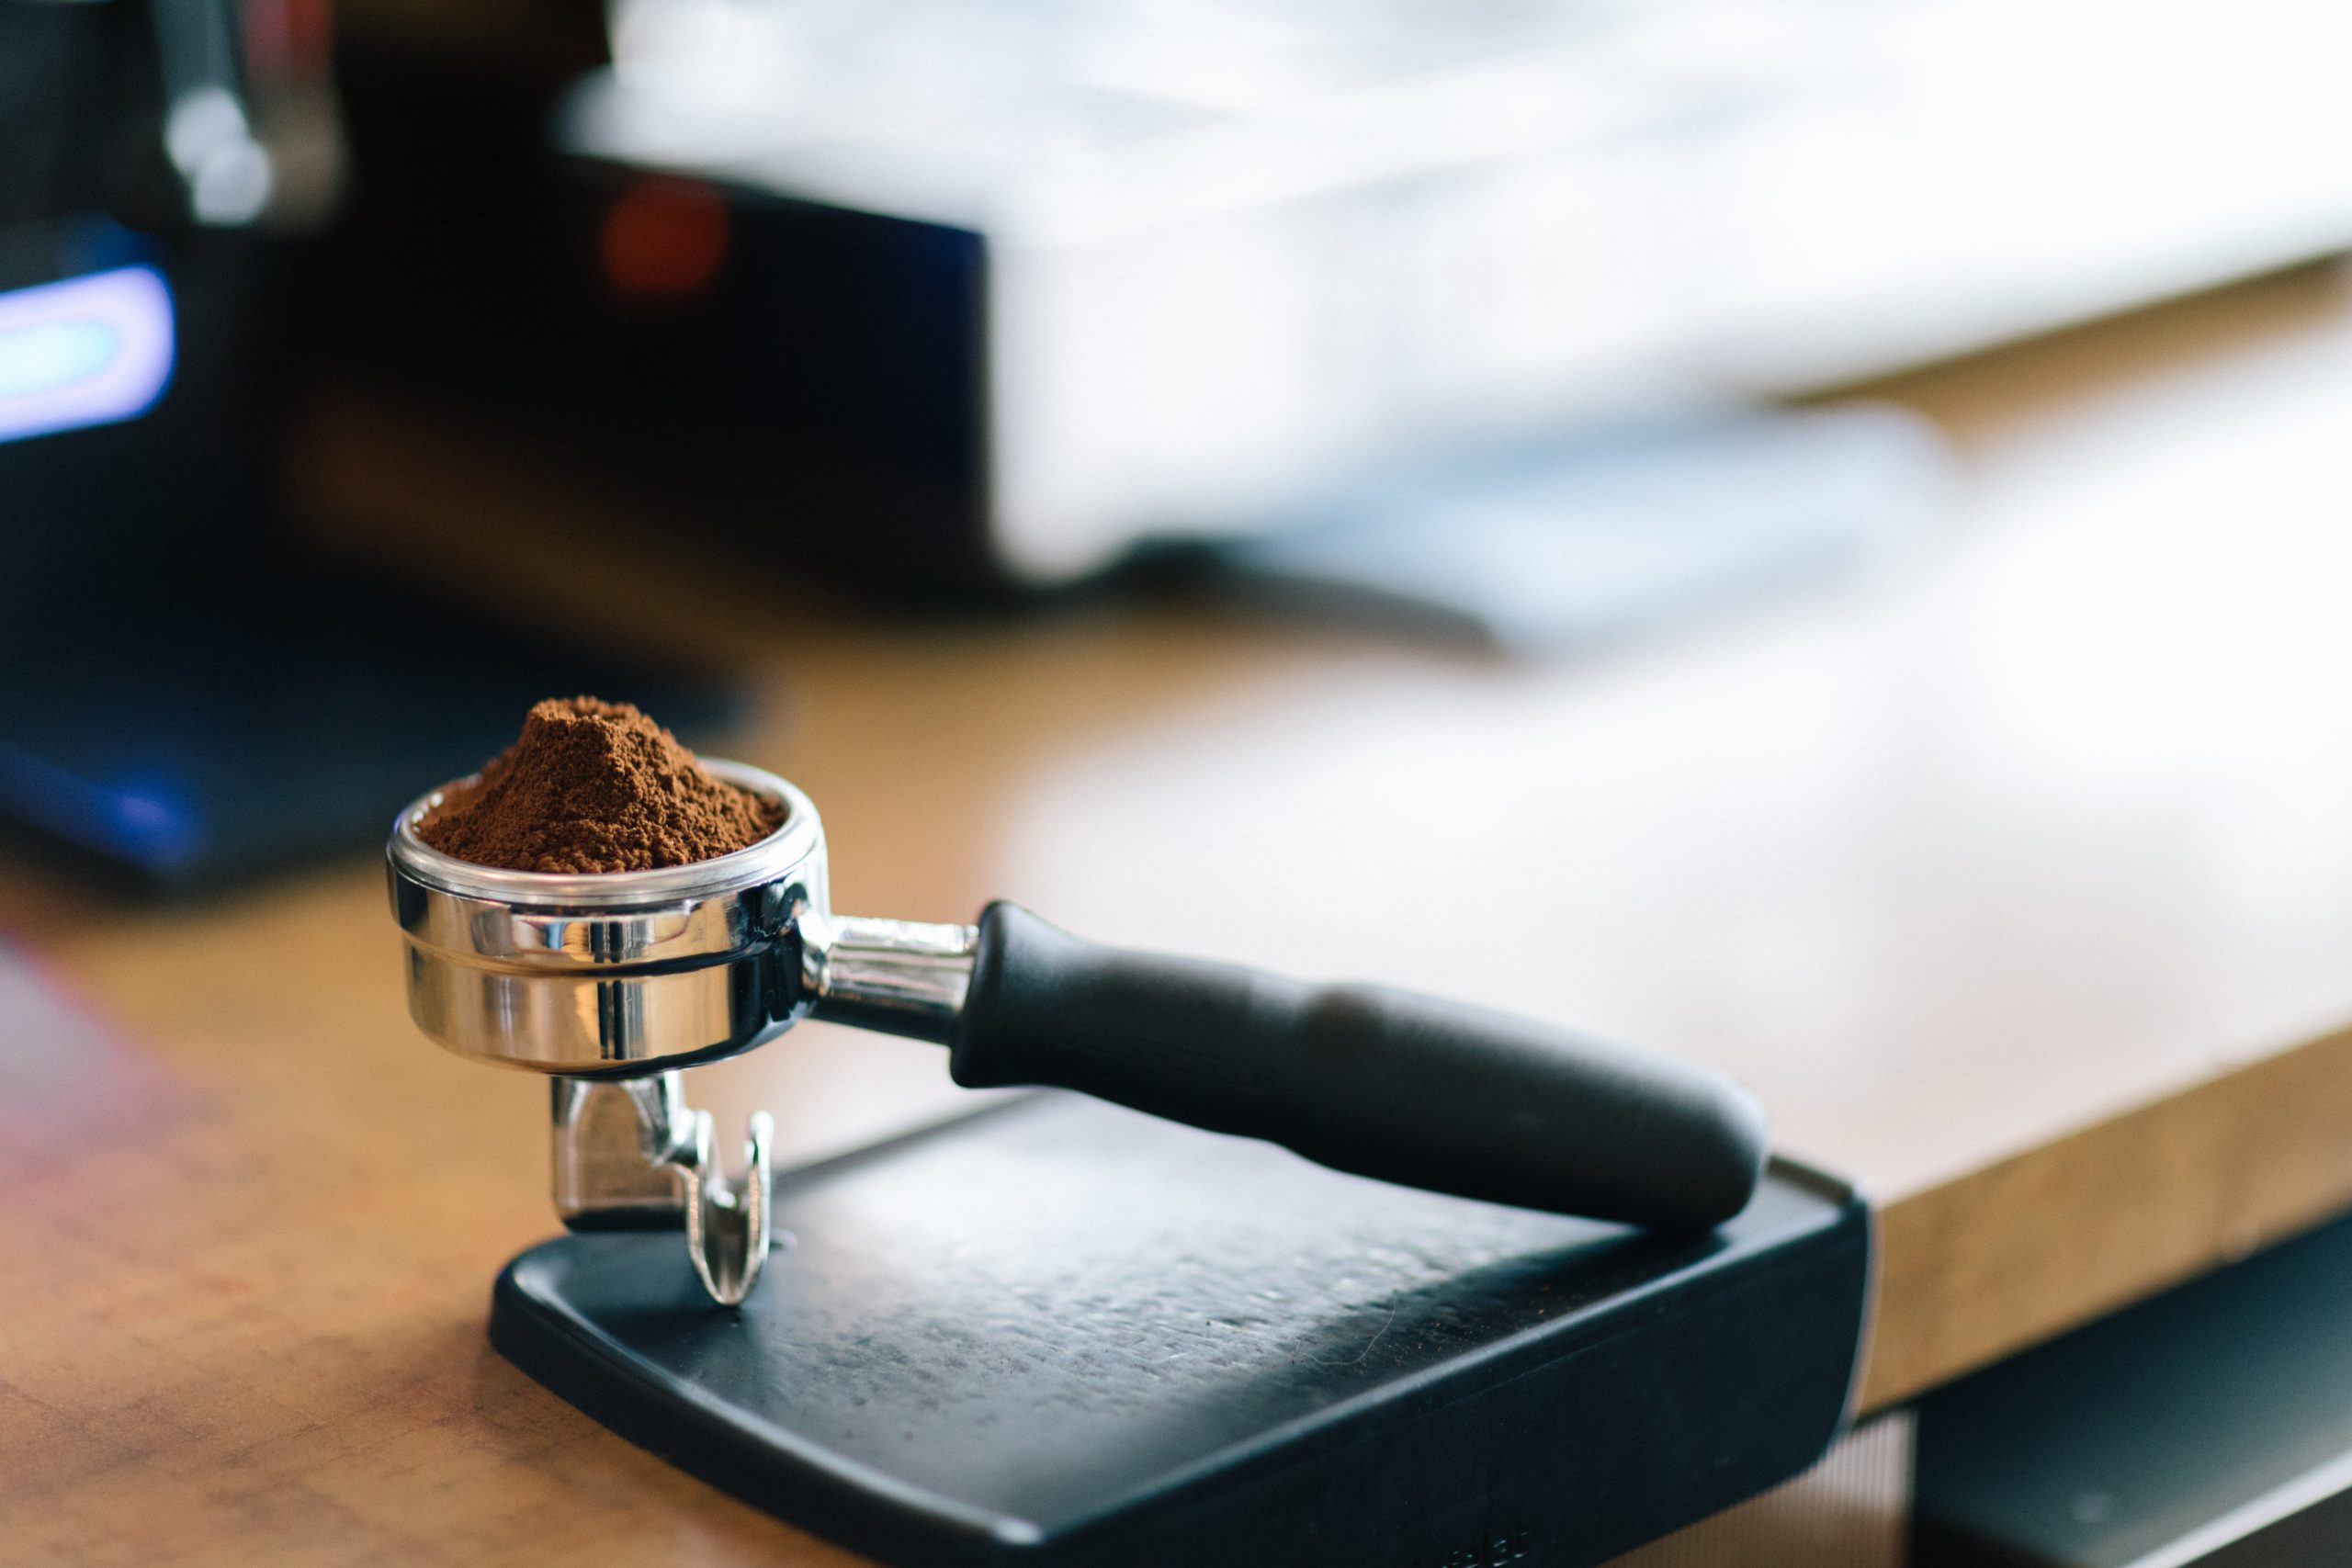 a heap of coffee grounds in a portafilter